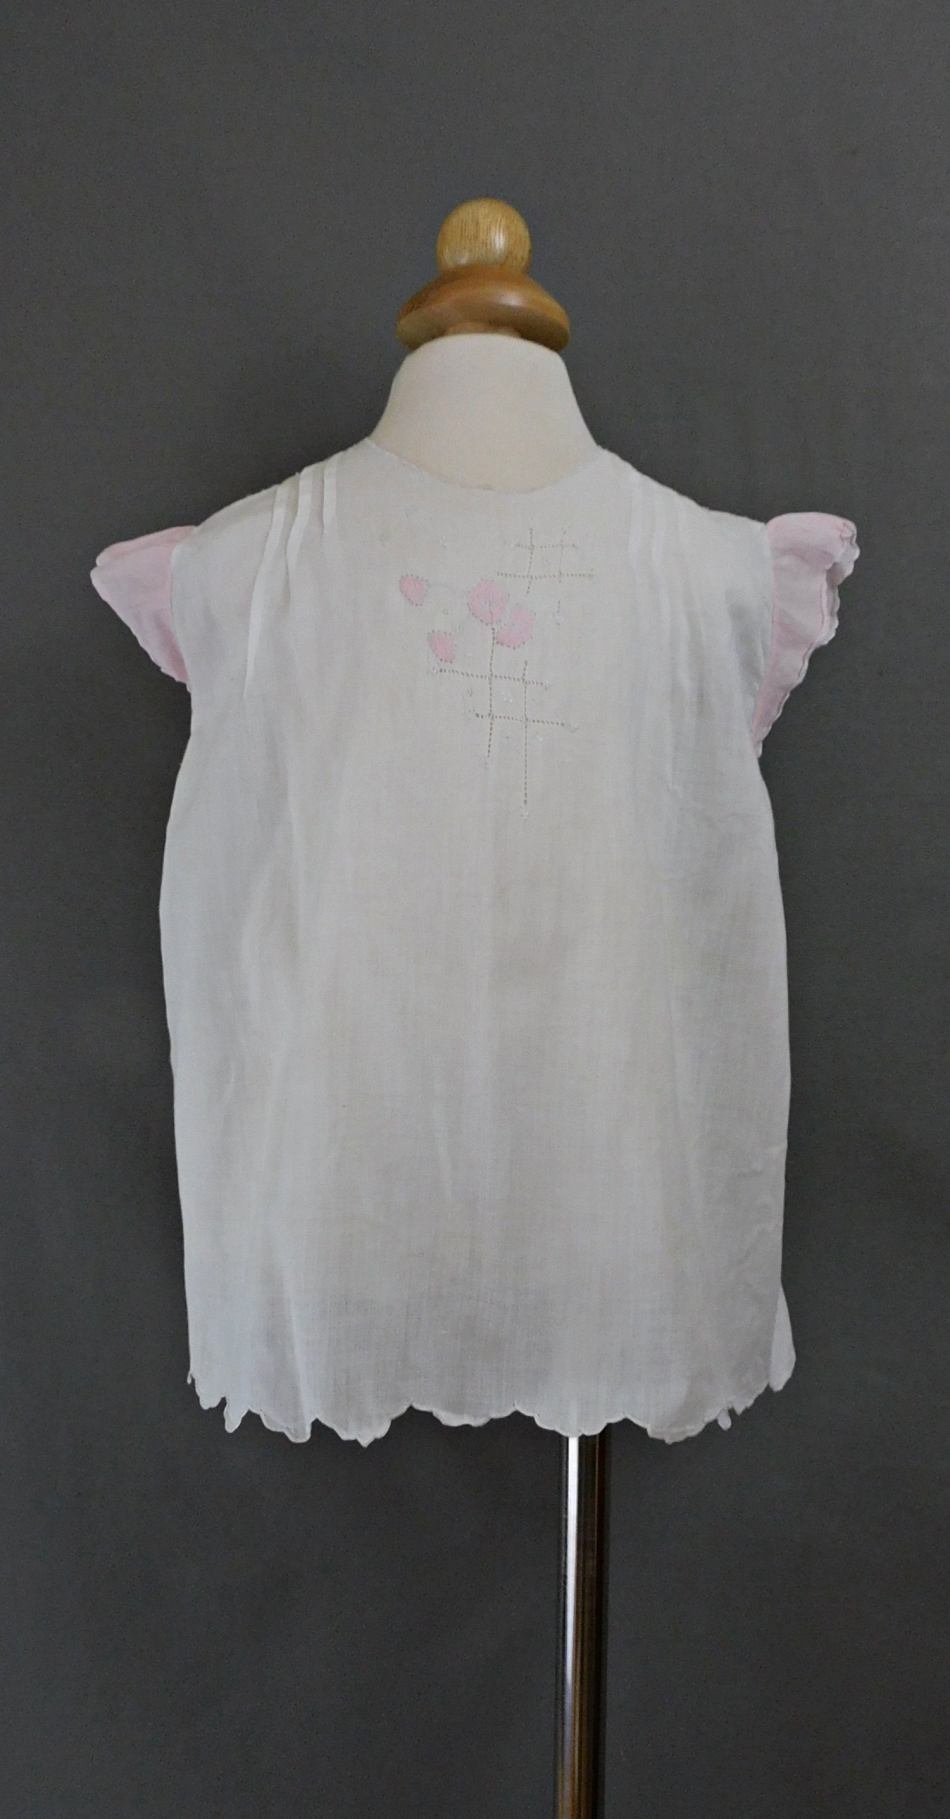 Vintage Little Girl Dress, White Cotton with Pink Sleeves, 22 inch chest 1930s, hand sewn